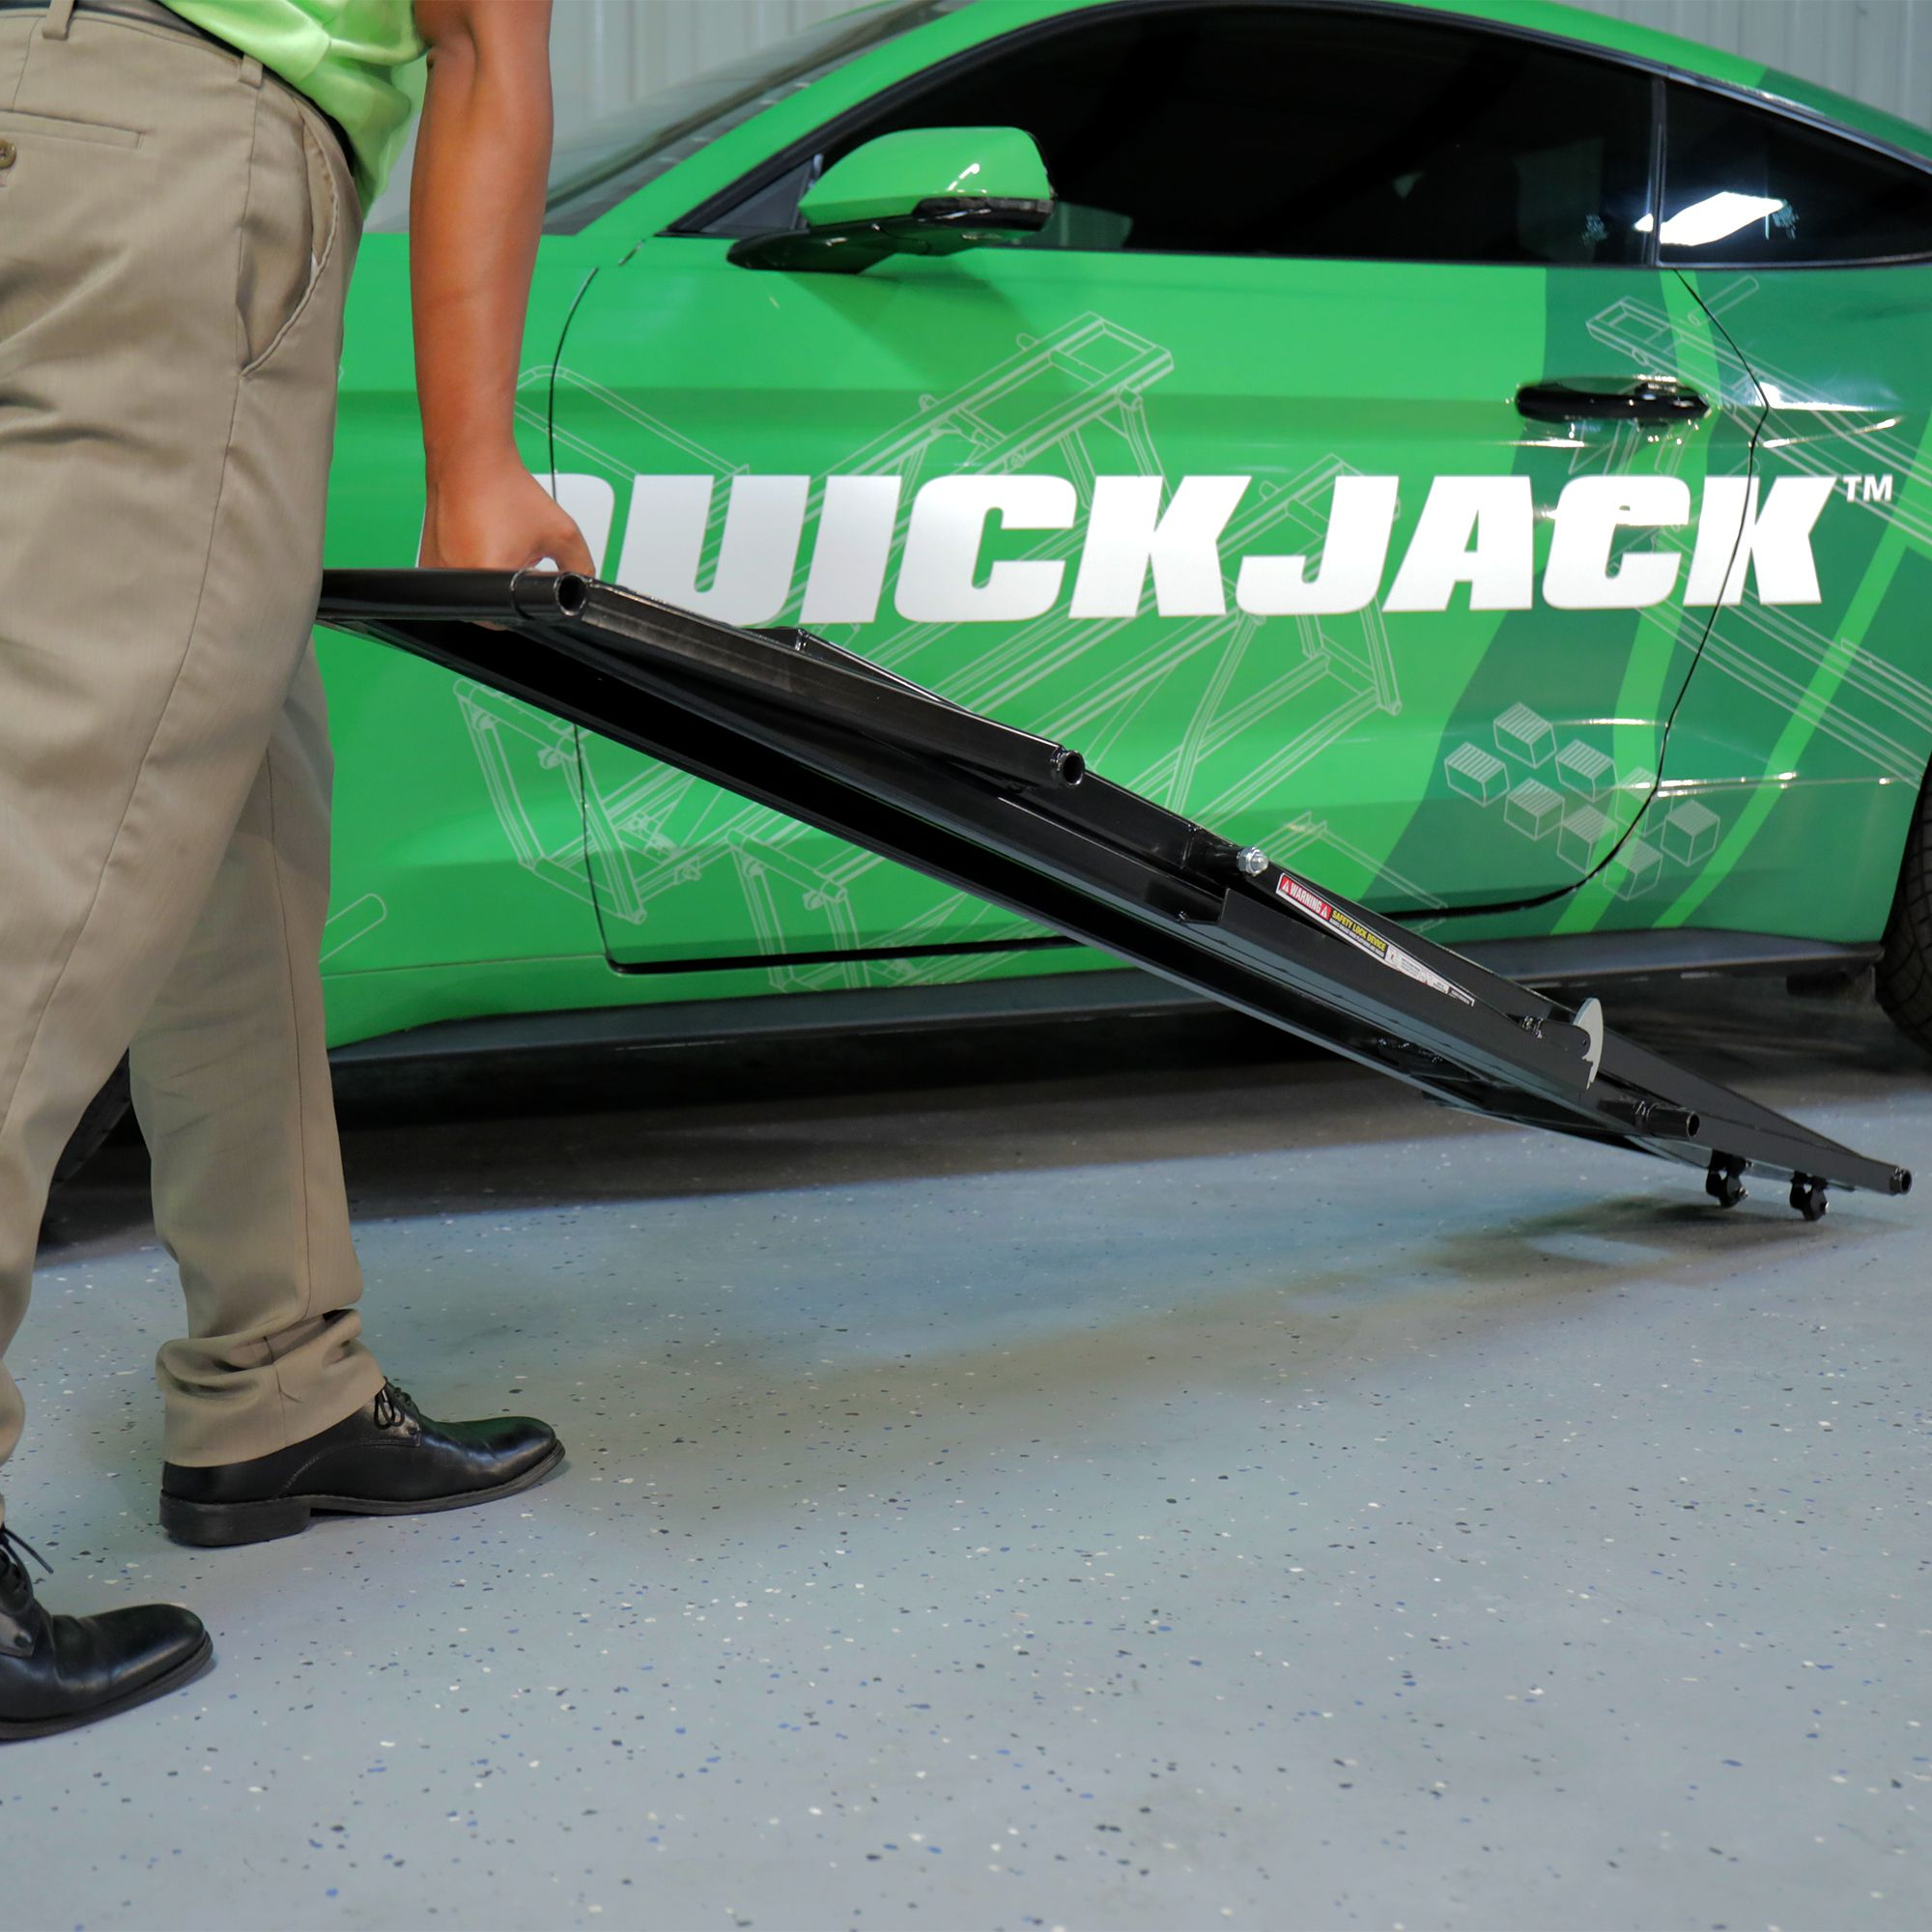 QuickJack 5,000-LB Capacity Portable Car Lift